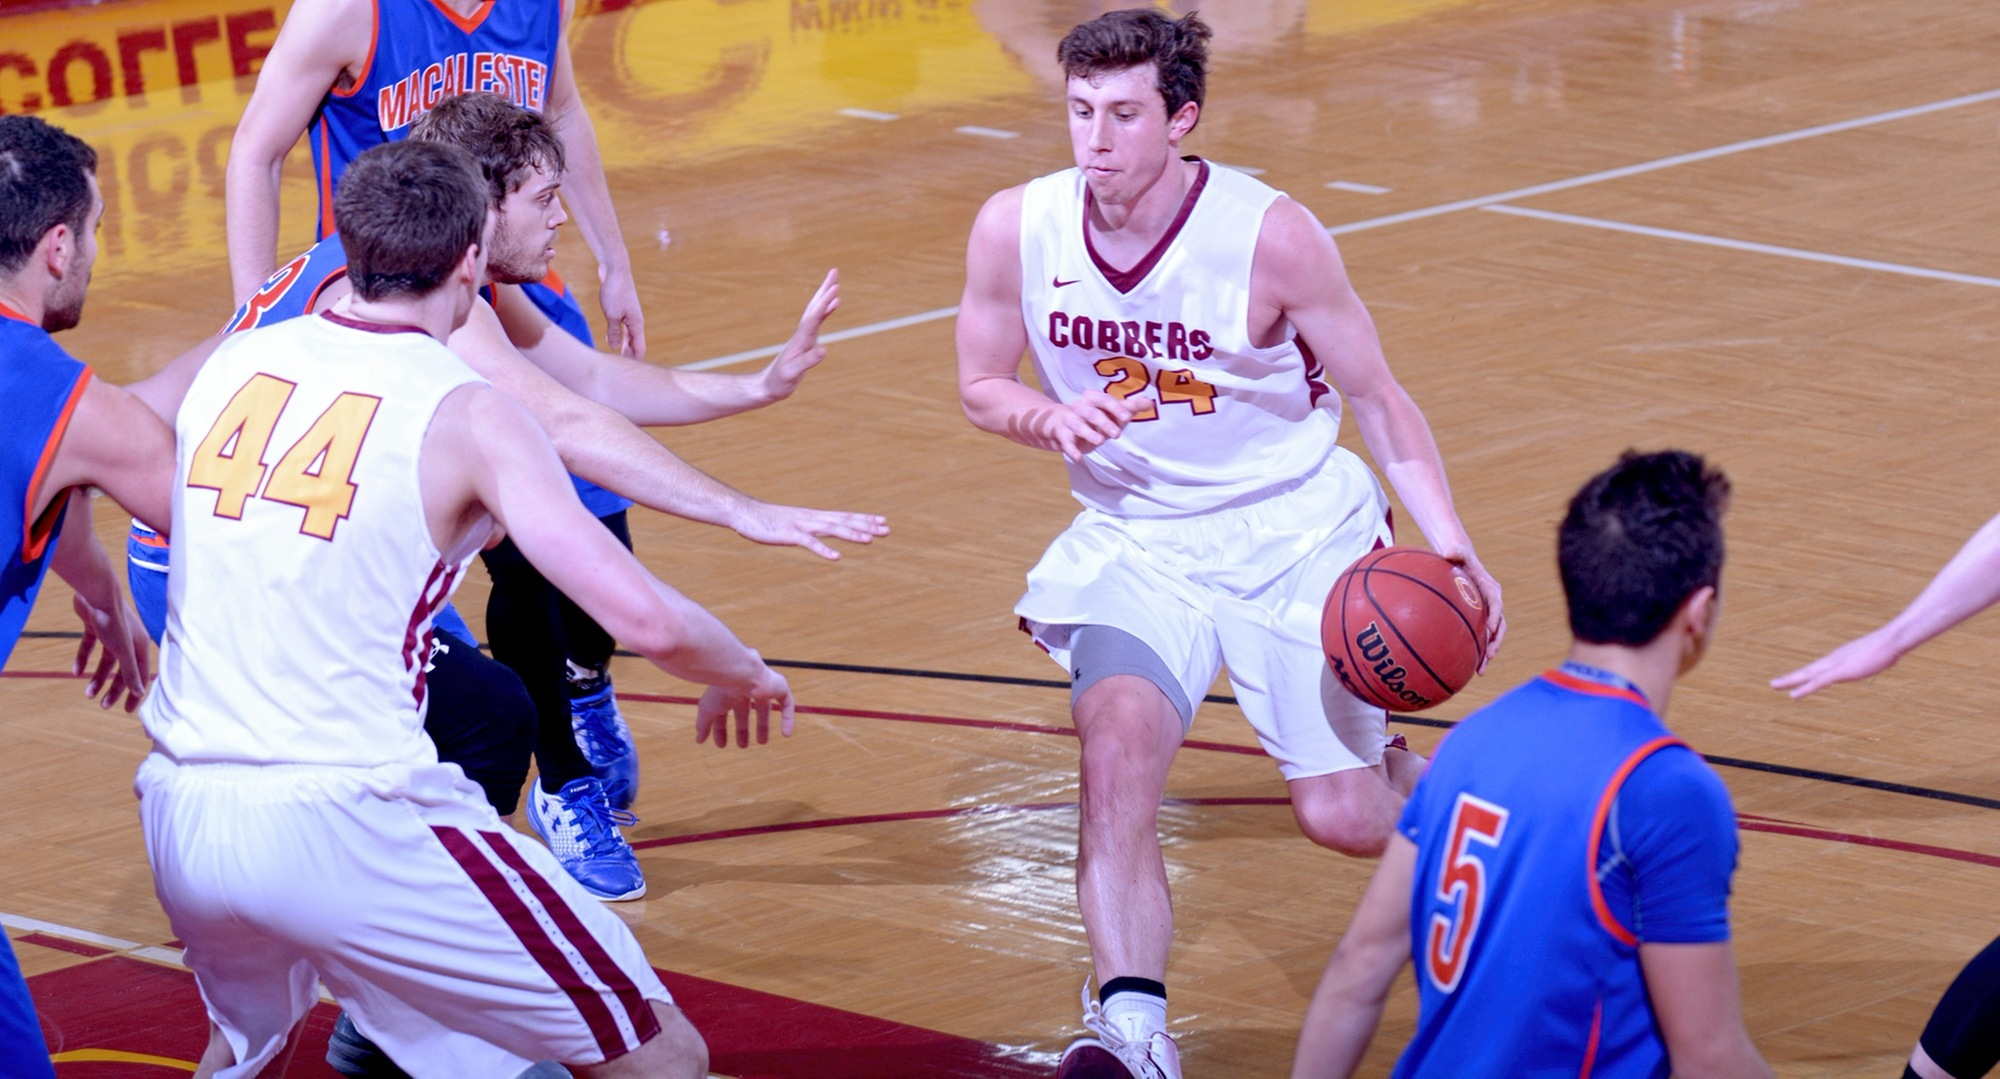 Senior Austin Nelson put up his third 20-point game of the season as he scored 20 points in the Cobbers' 85-72 win at Macalester.